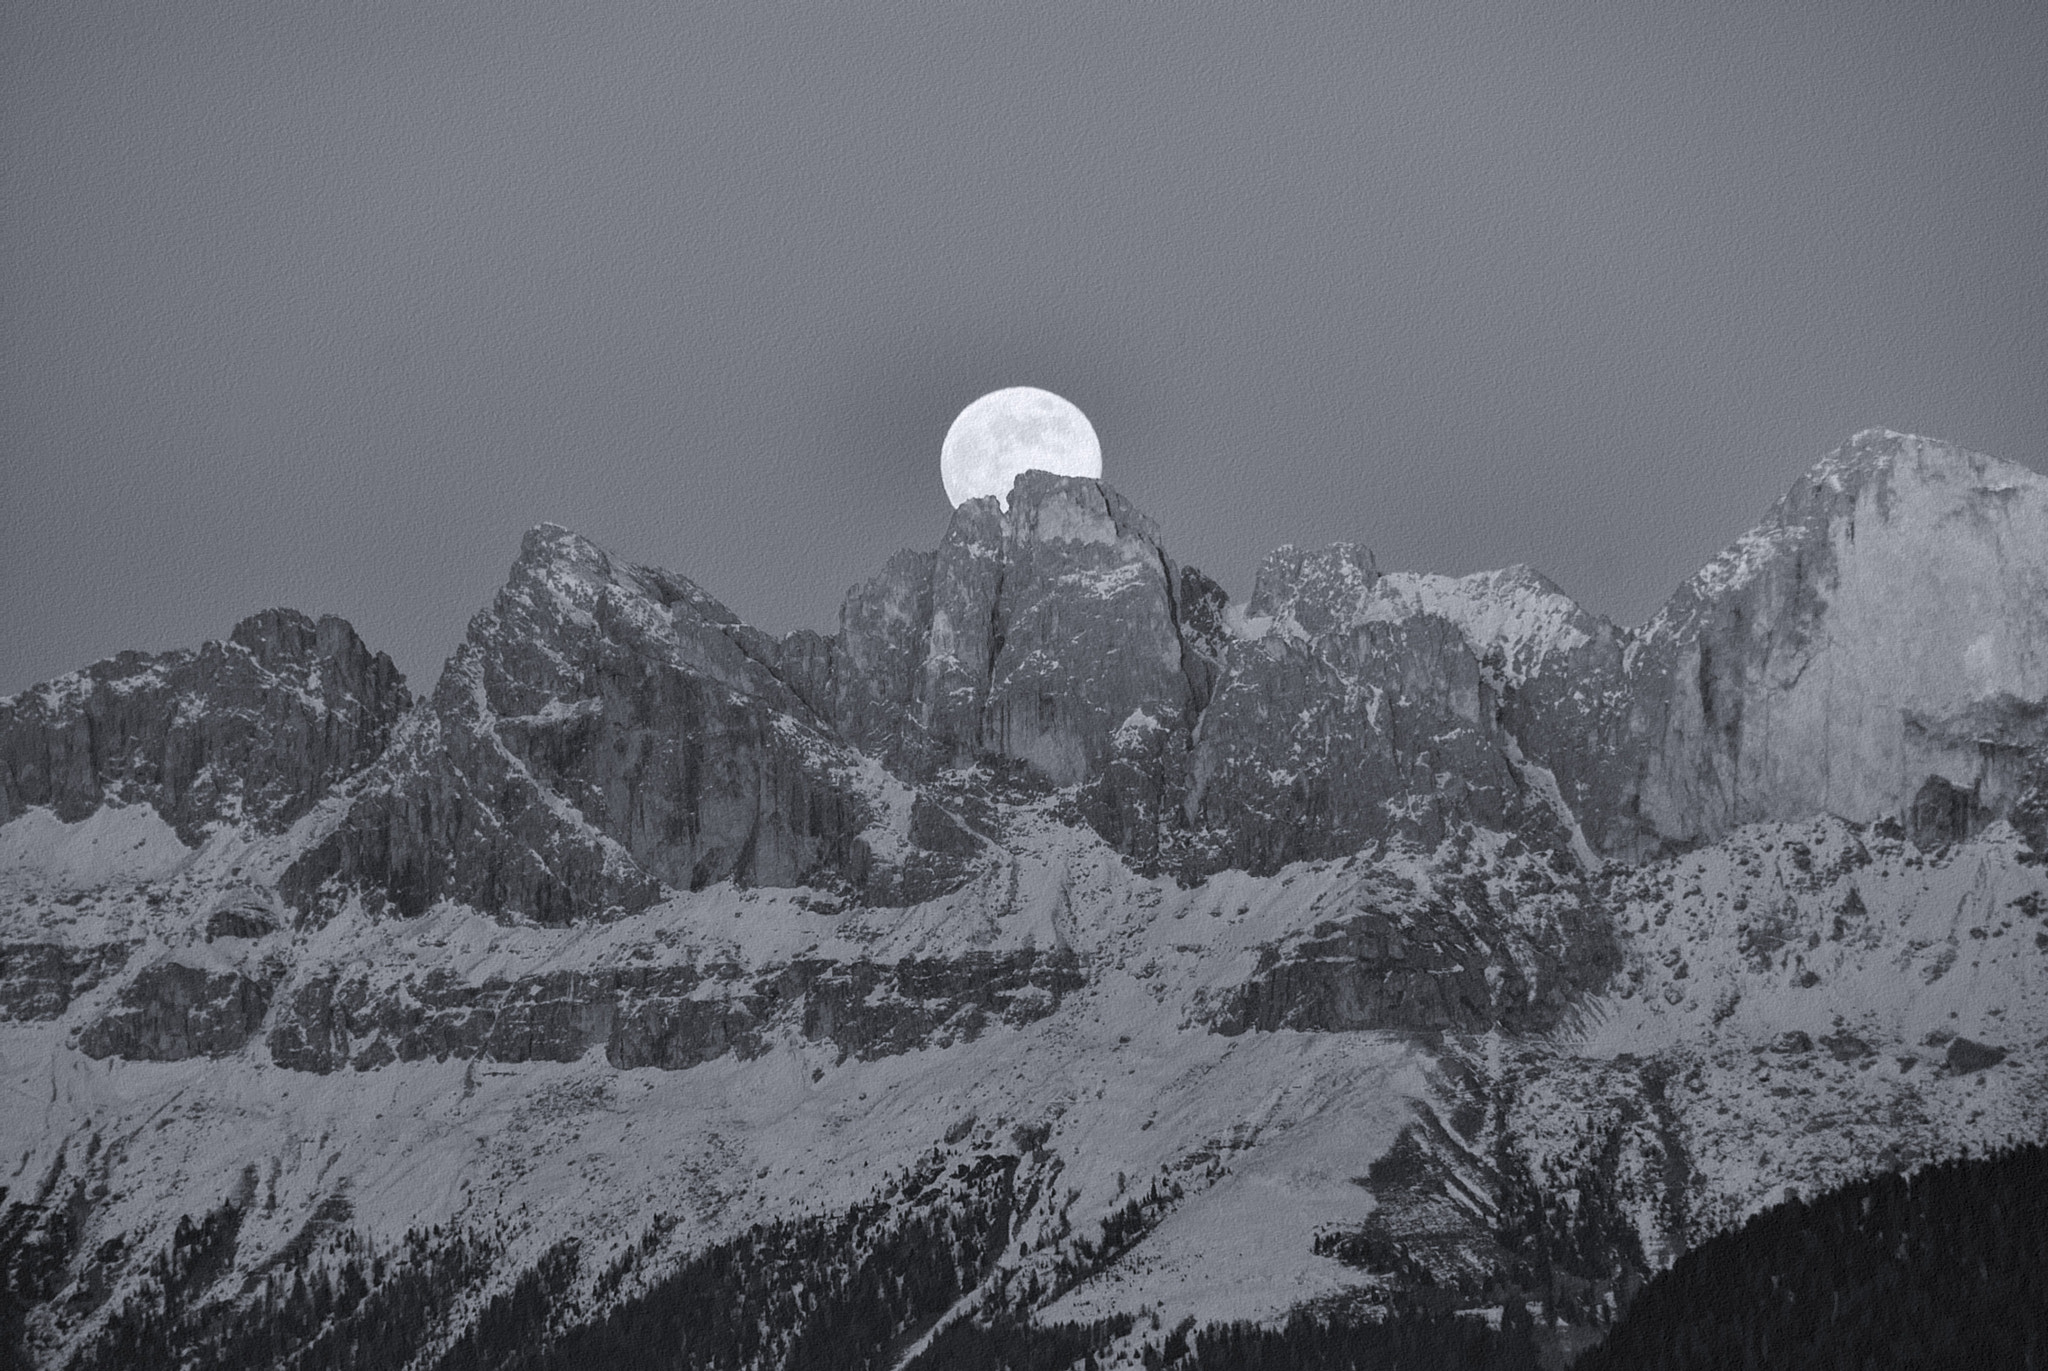 Photograph MOONRISE OVER JOCHGRIMM by Duschan Tomic on 500px